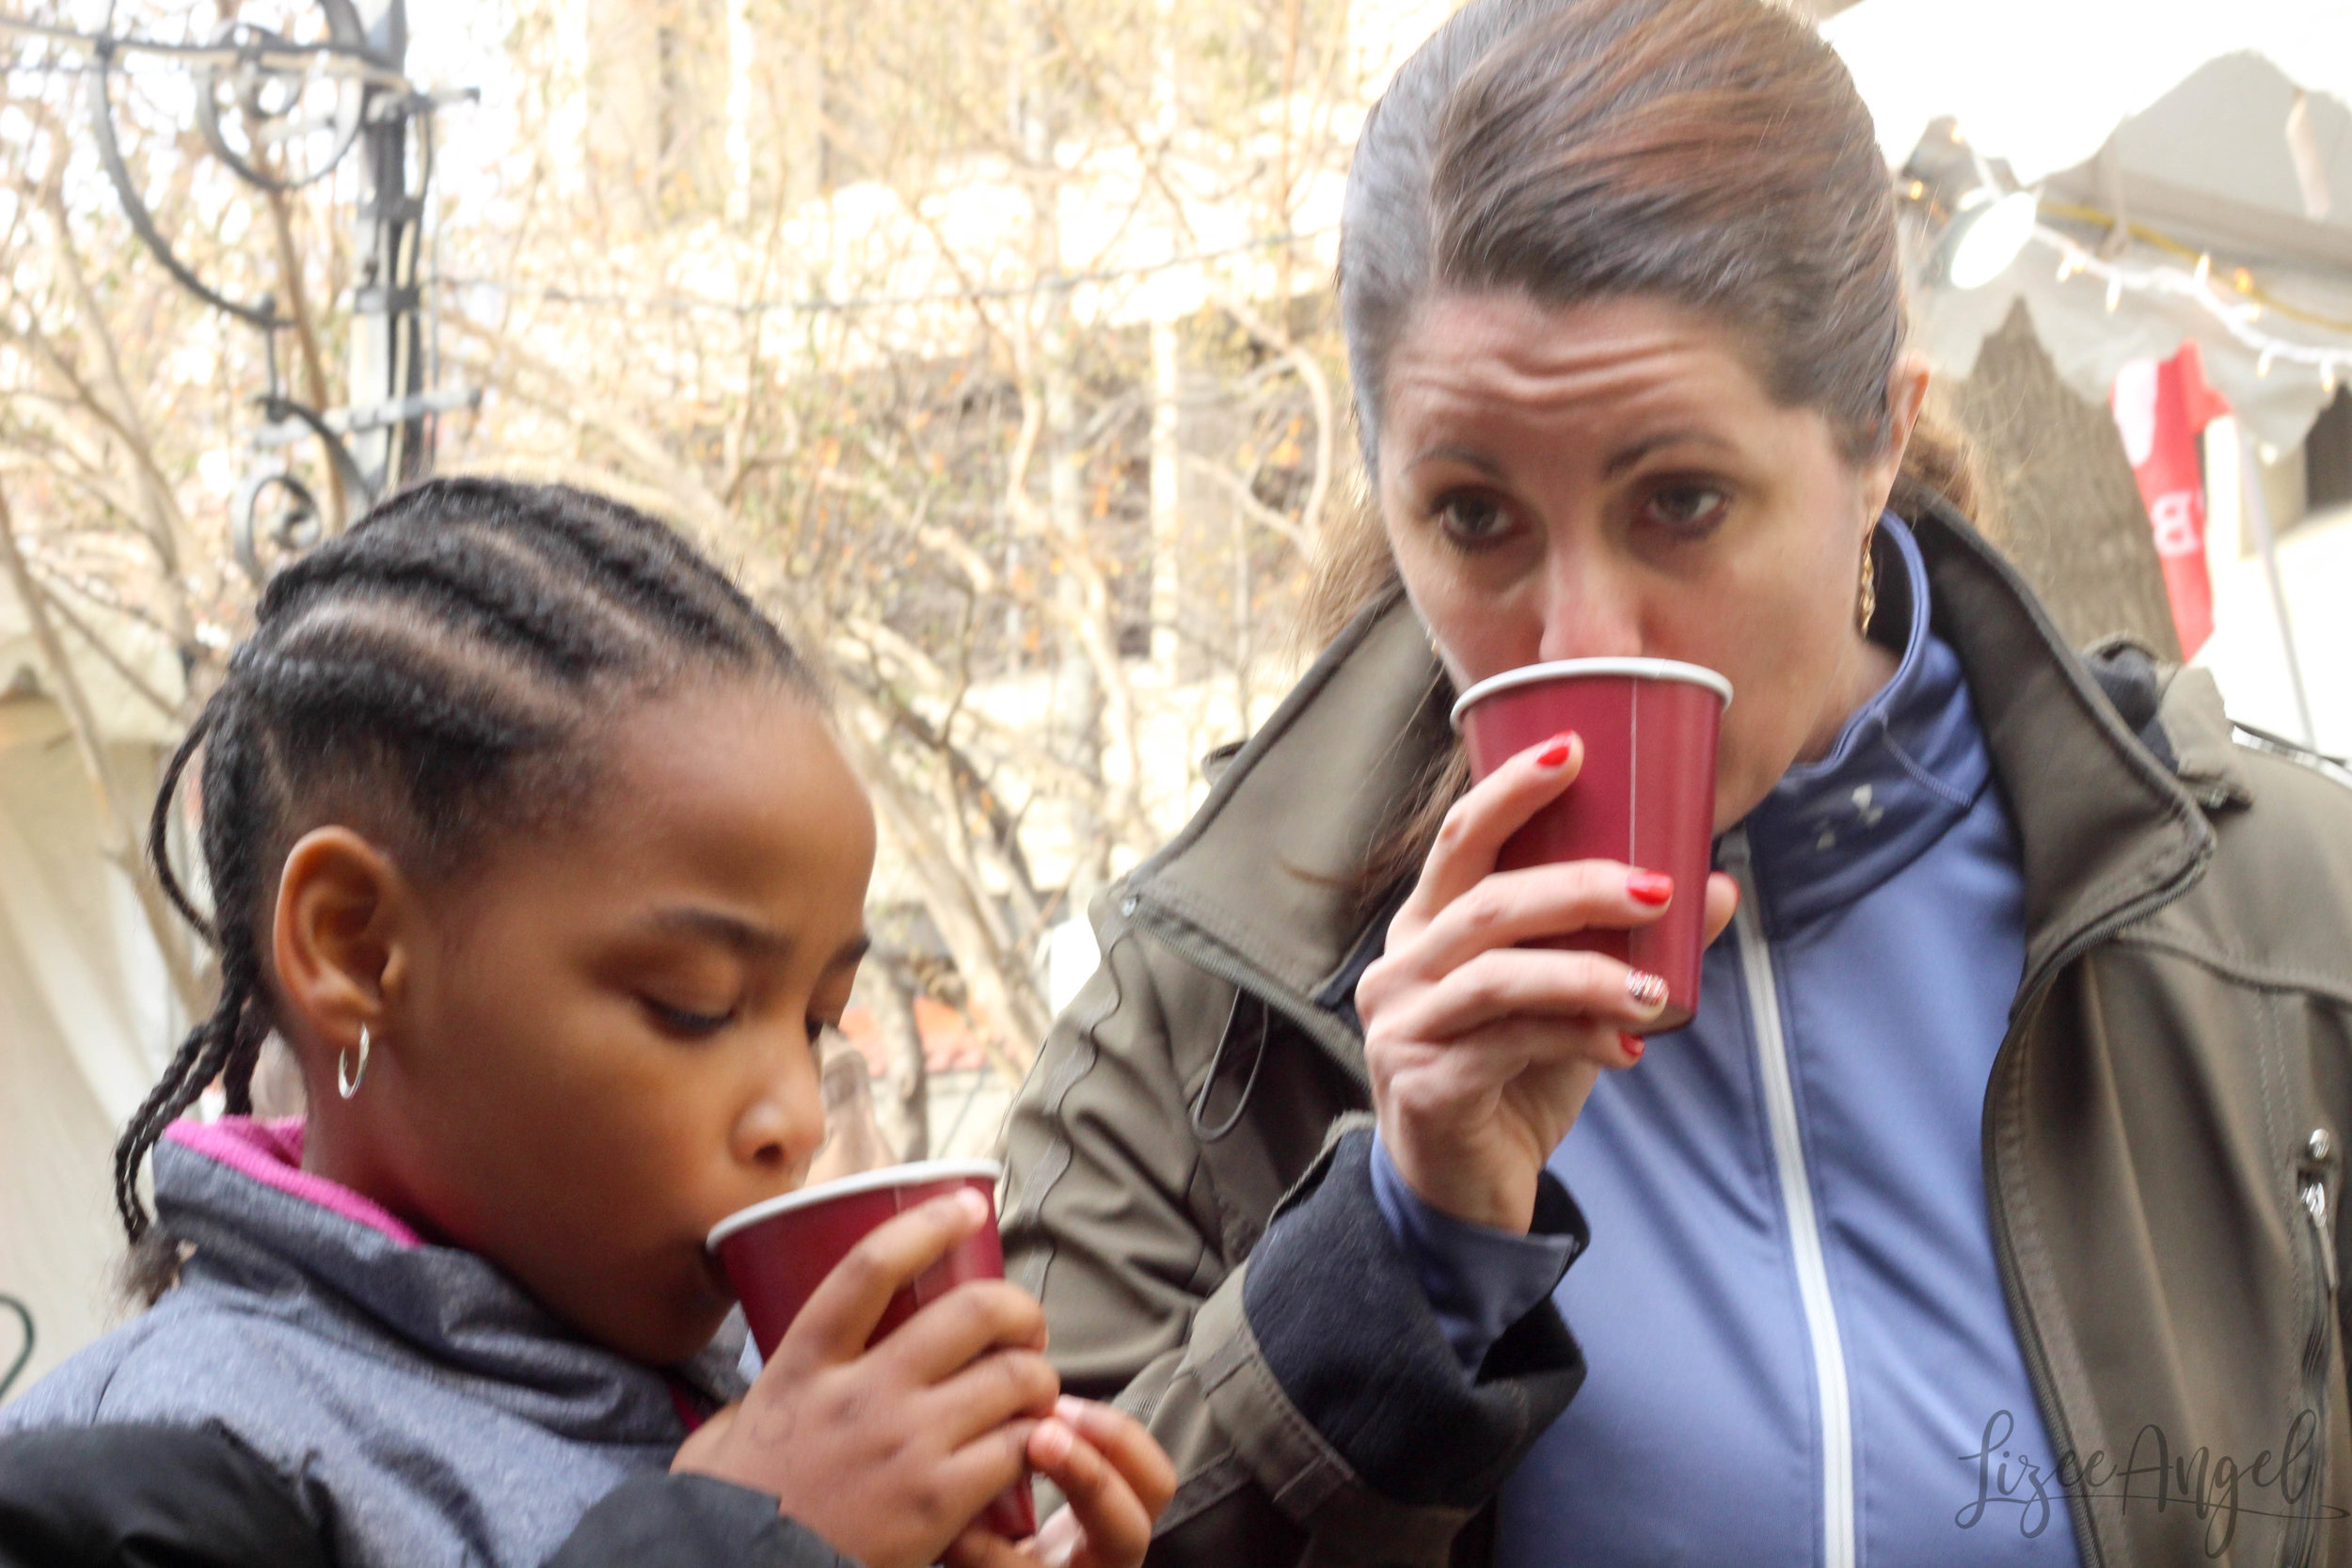 My beautiful dates for the day Jessica and my niece enjoying a hot cup of cider (spiked for Jess!) at the market